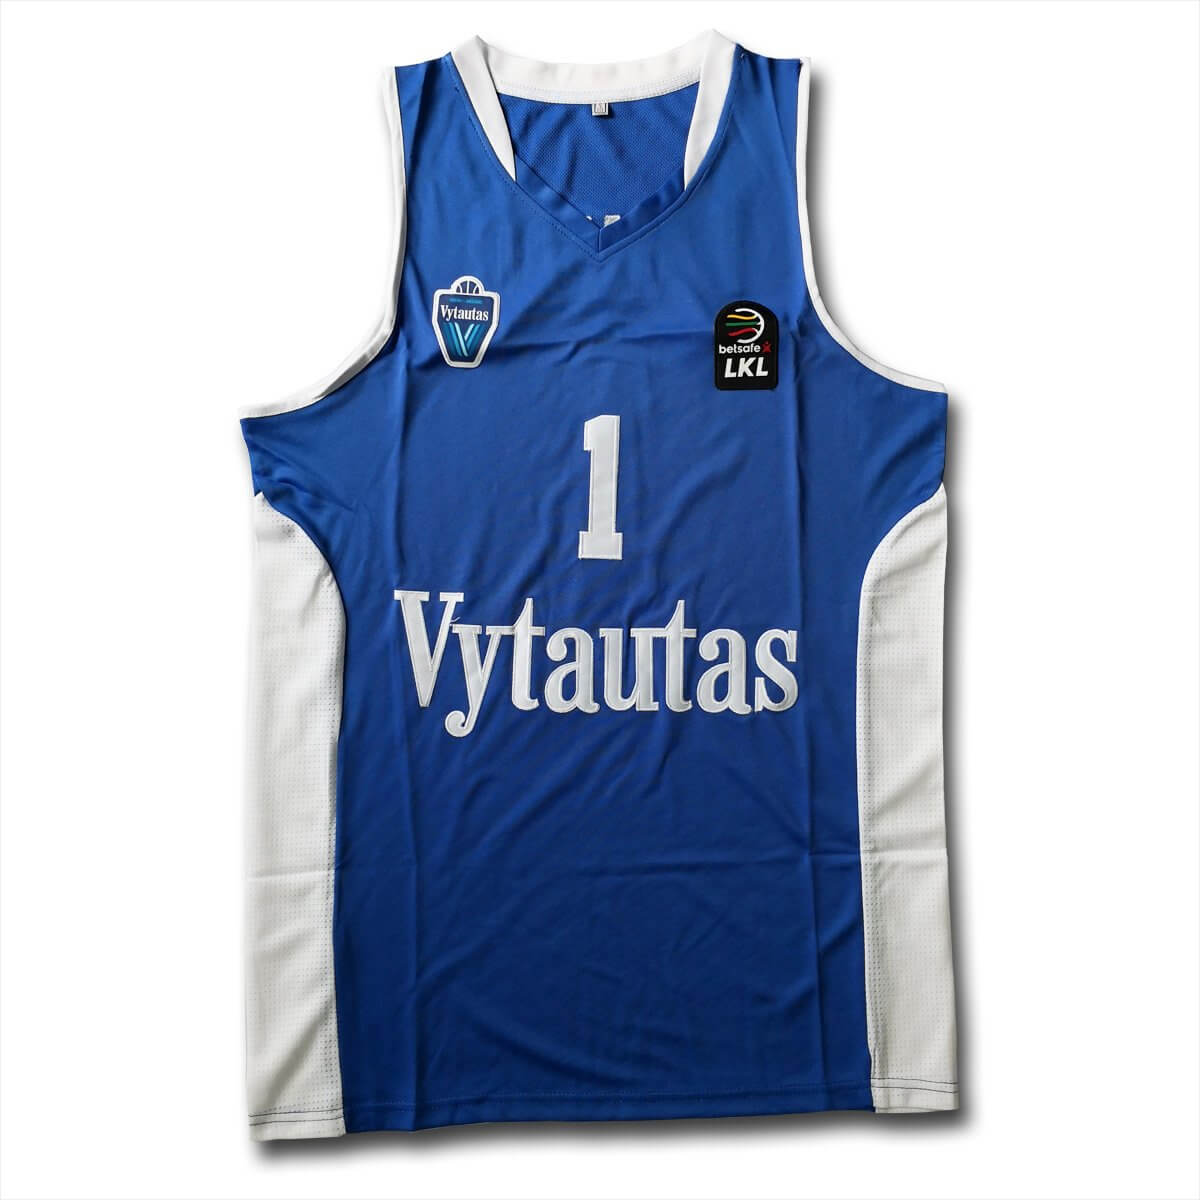 Lithuania Vytautas Basketball Jersey